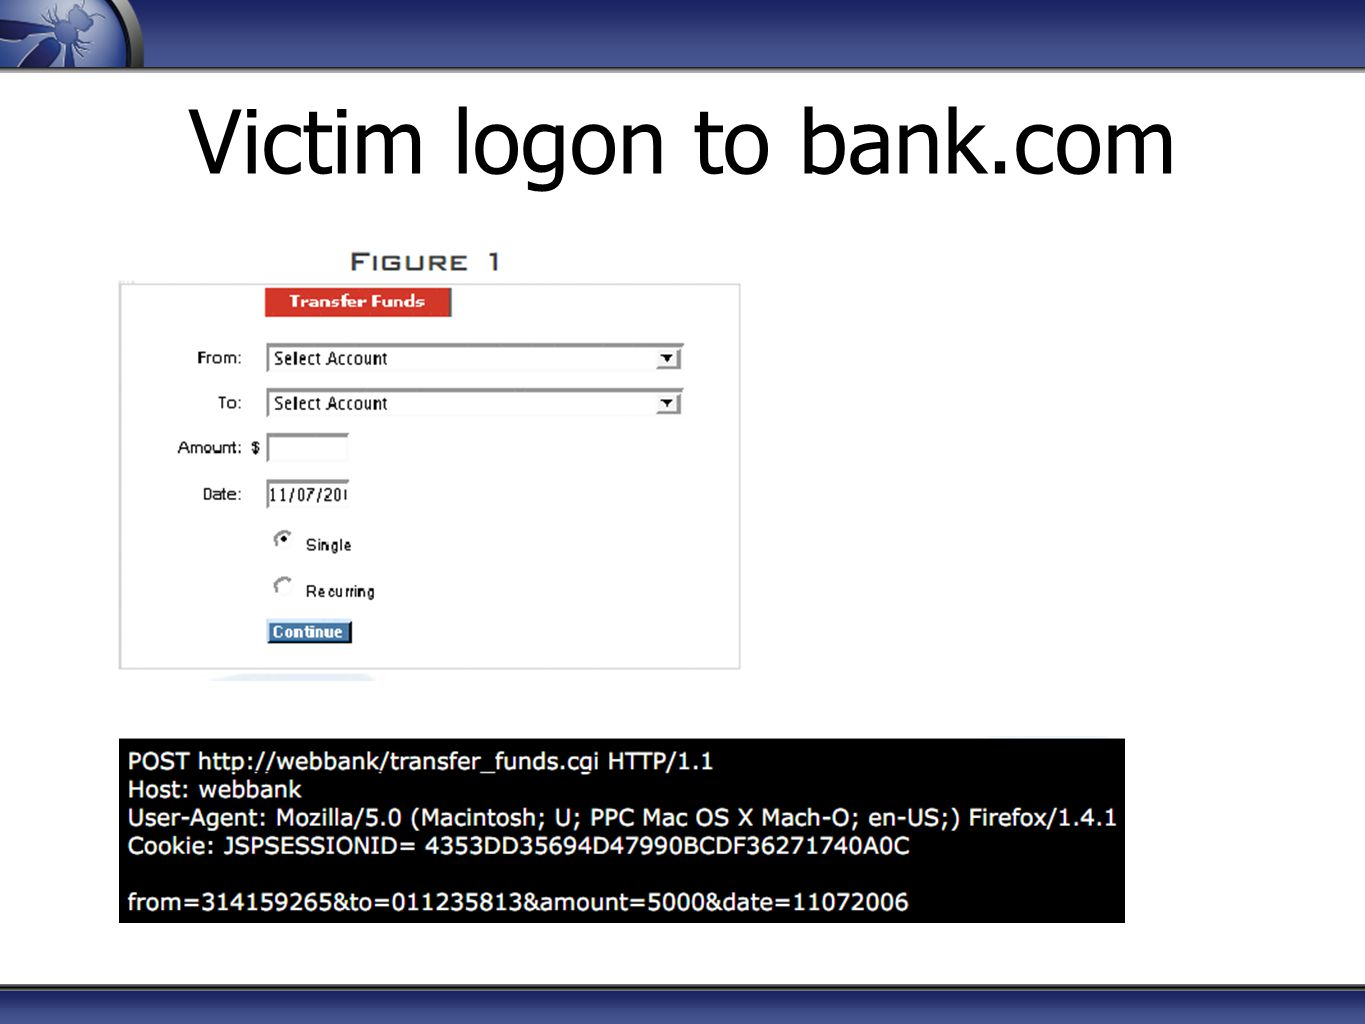 Victim logon to bank.com